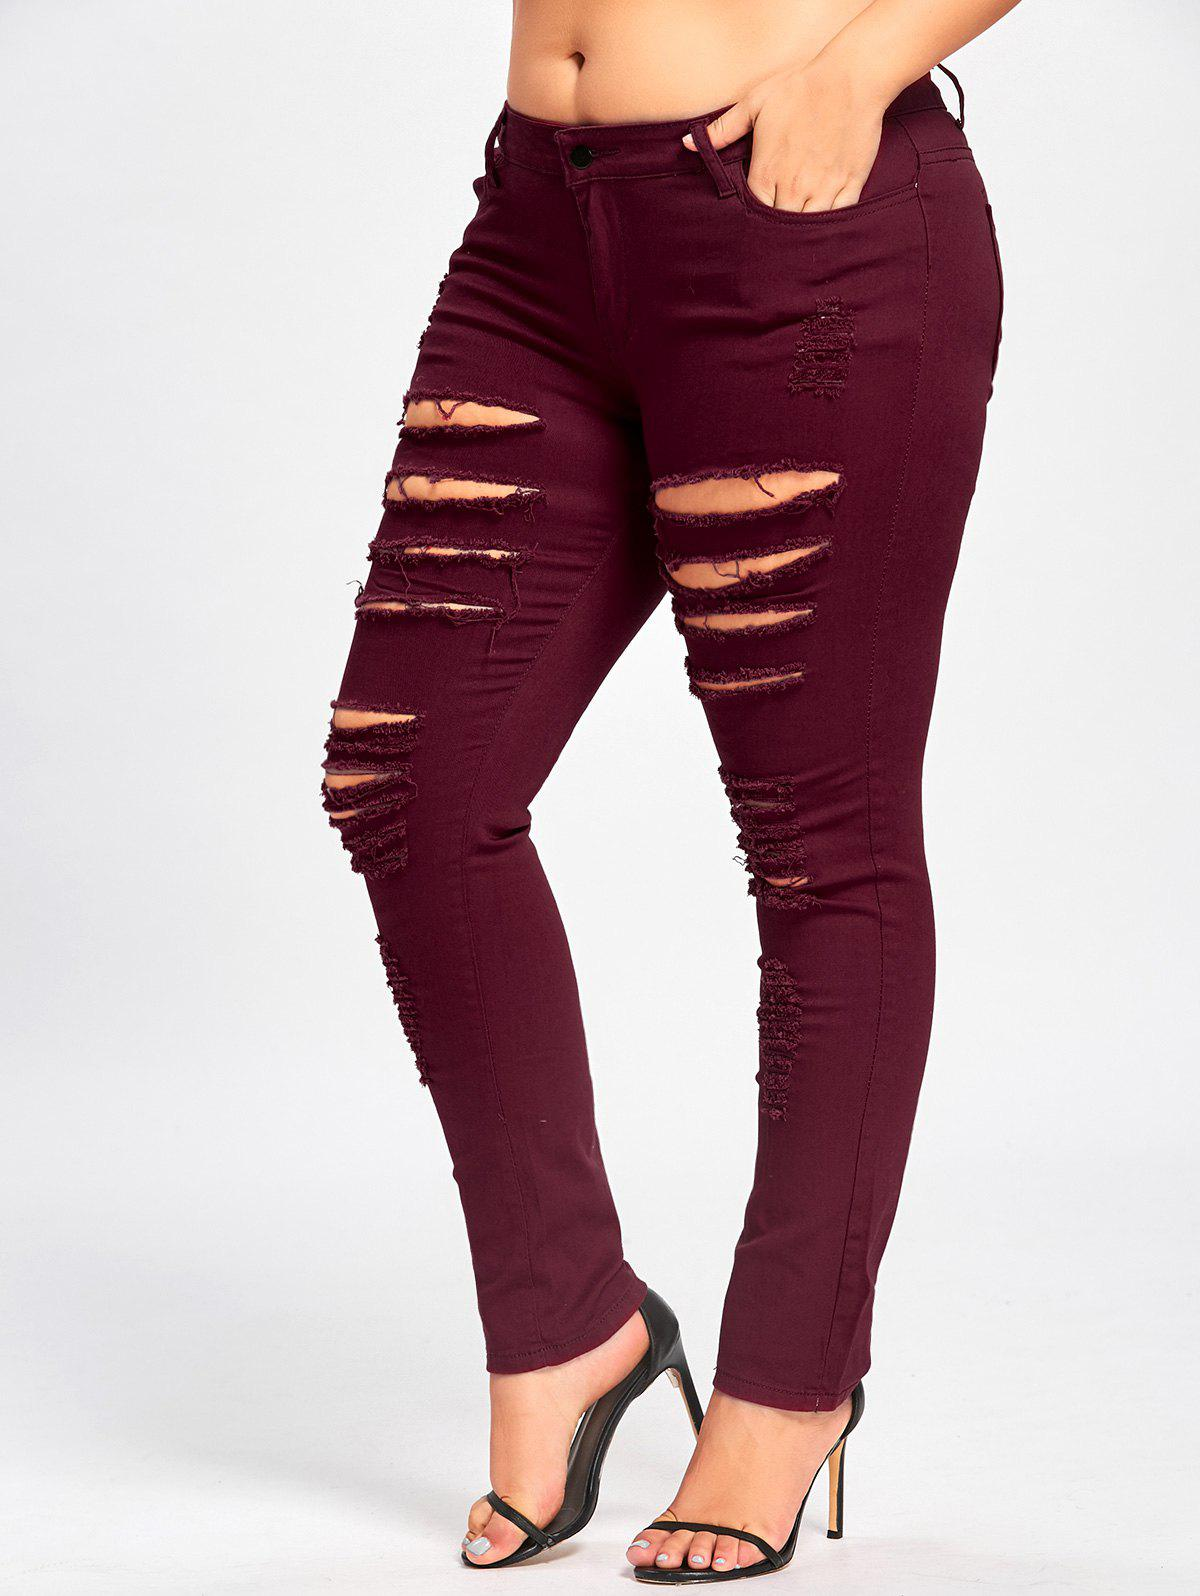 Plus Size Ladder Ribbed JeansWOMEN<br><br>Size: XL; Color: DEEP RED; Style: Fashion; Length: Normal; Material: Polyester,Spandex; Fit Type: Regular; Waist Type: Mid; Closure Type: Zipper Fly; Pattern Type: Solid; Pant Style: Pencil Pants; Weight: 0.4700kg; Package Contents: 1 x Jeans;